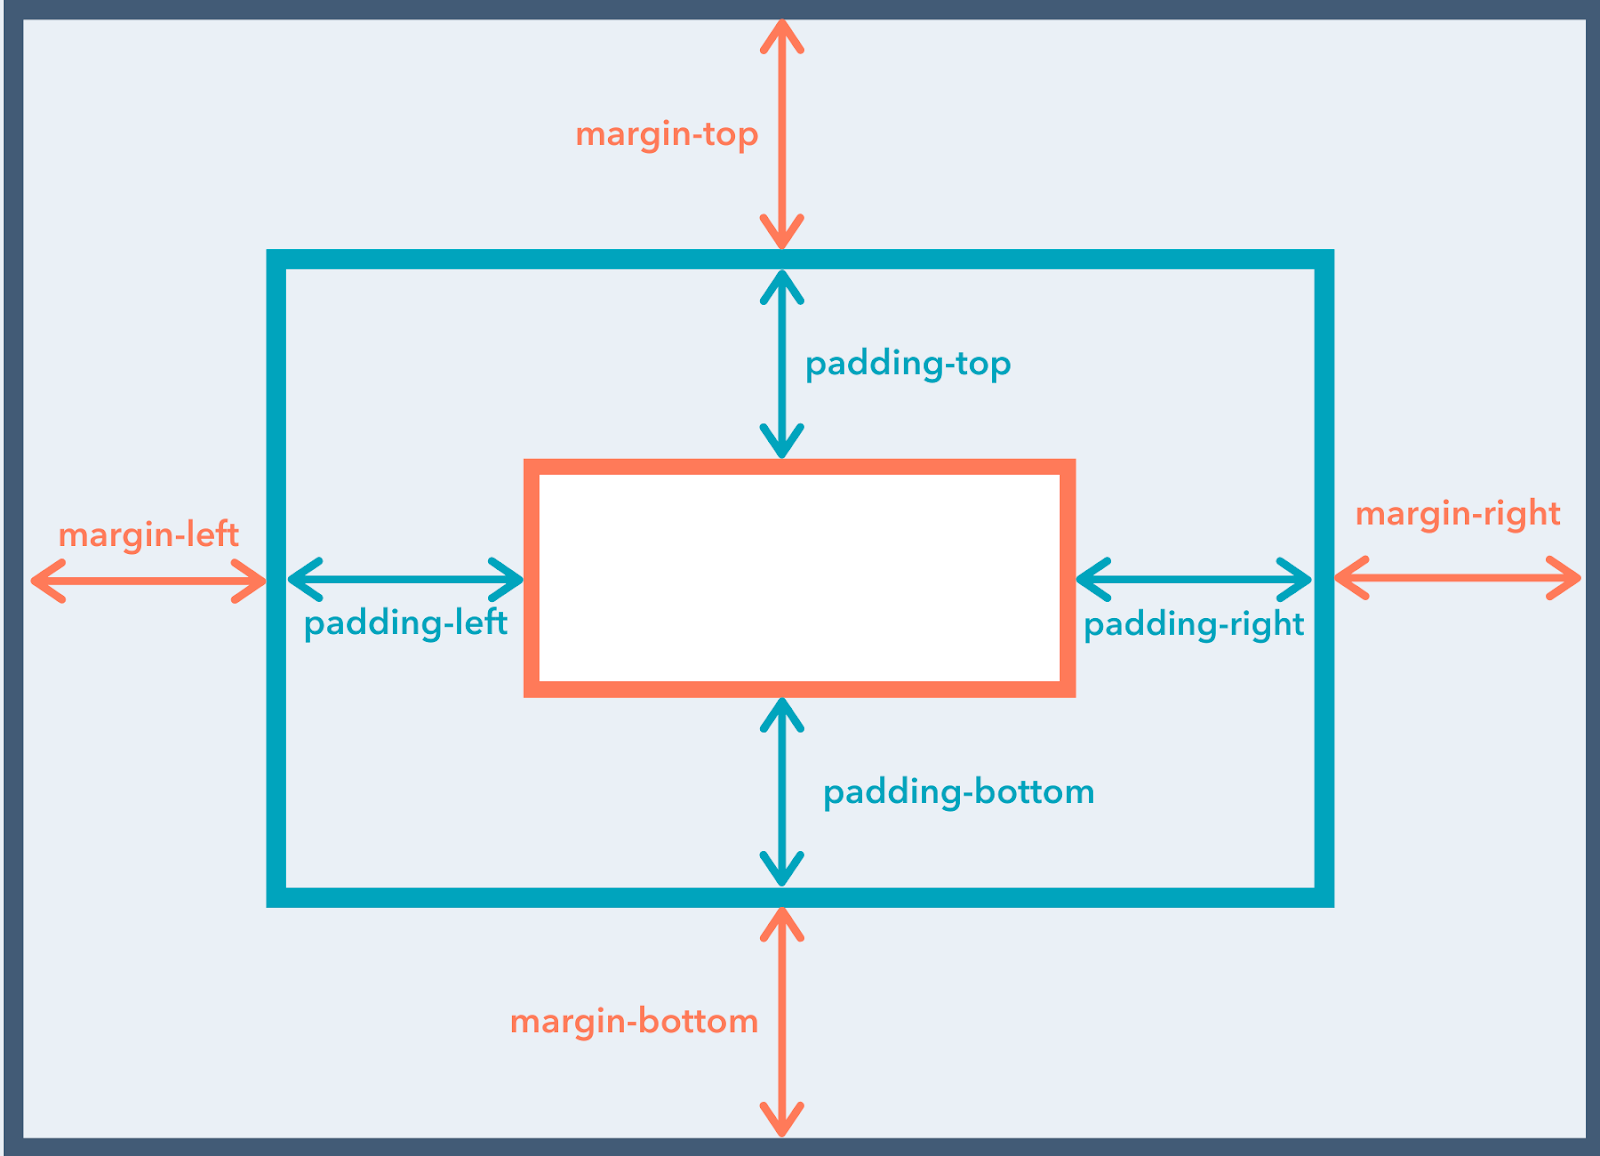 visual depiction of padding versus margin properties in CSS box model